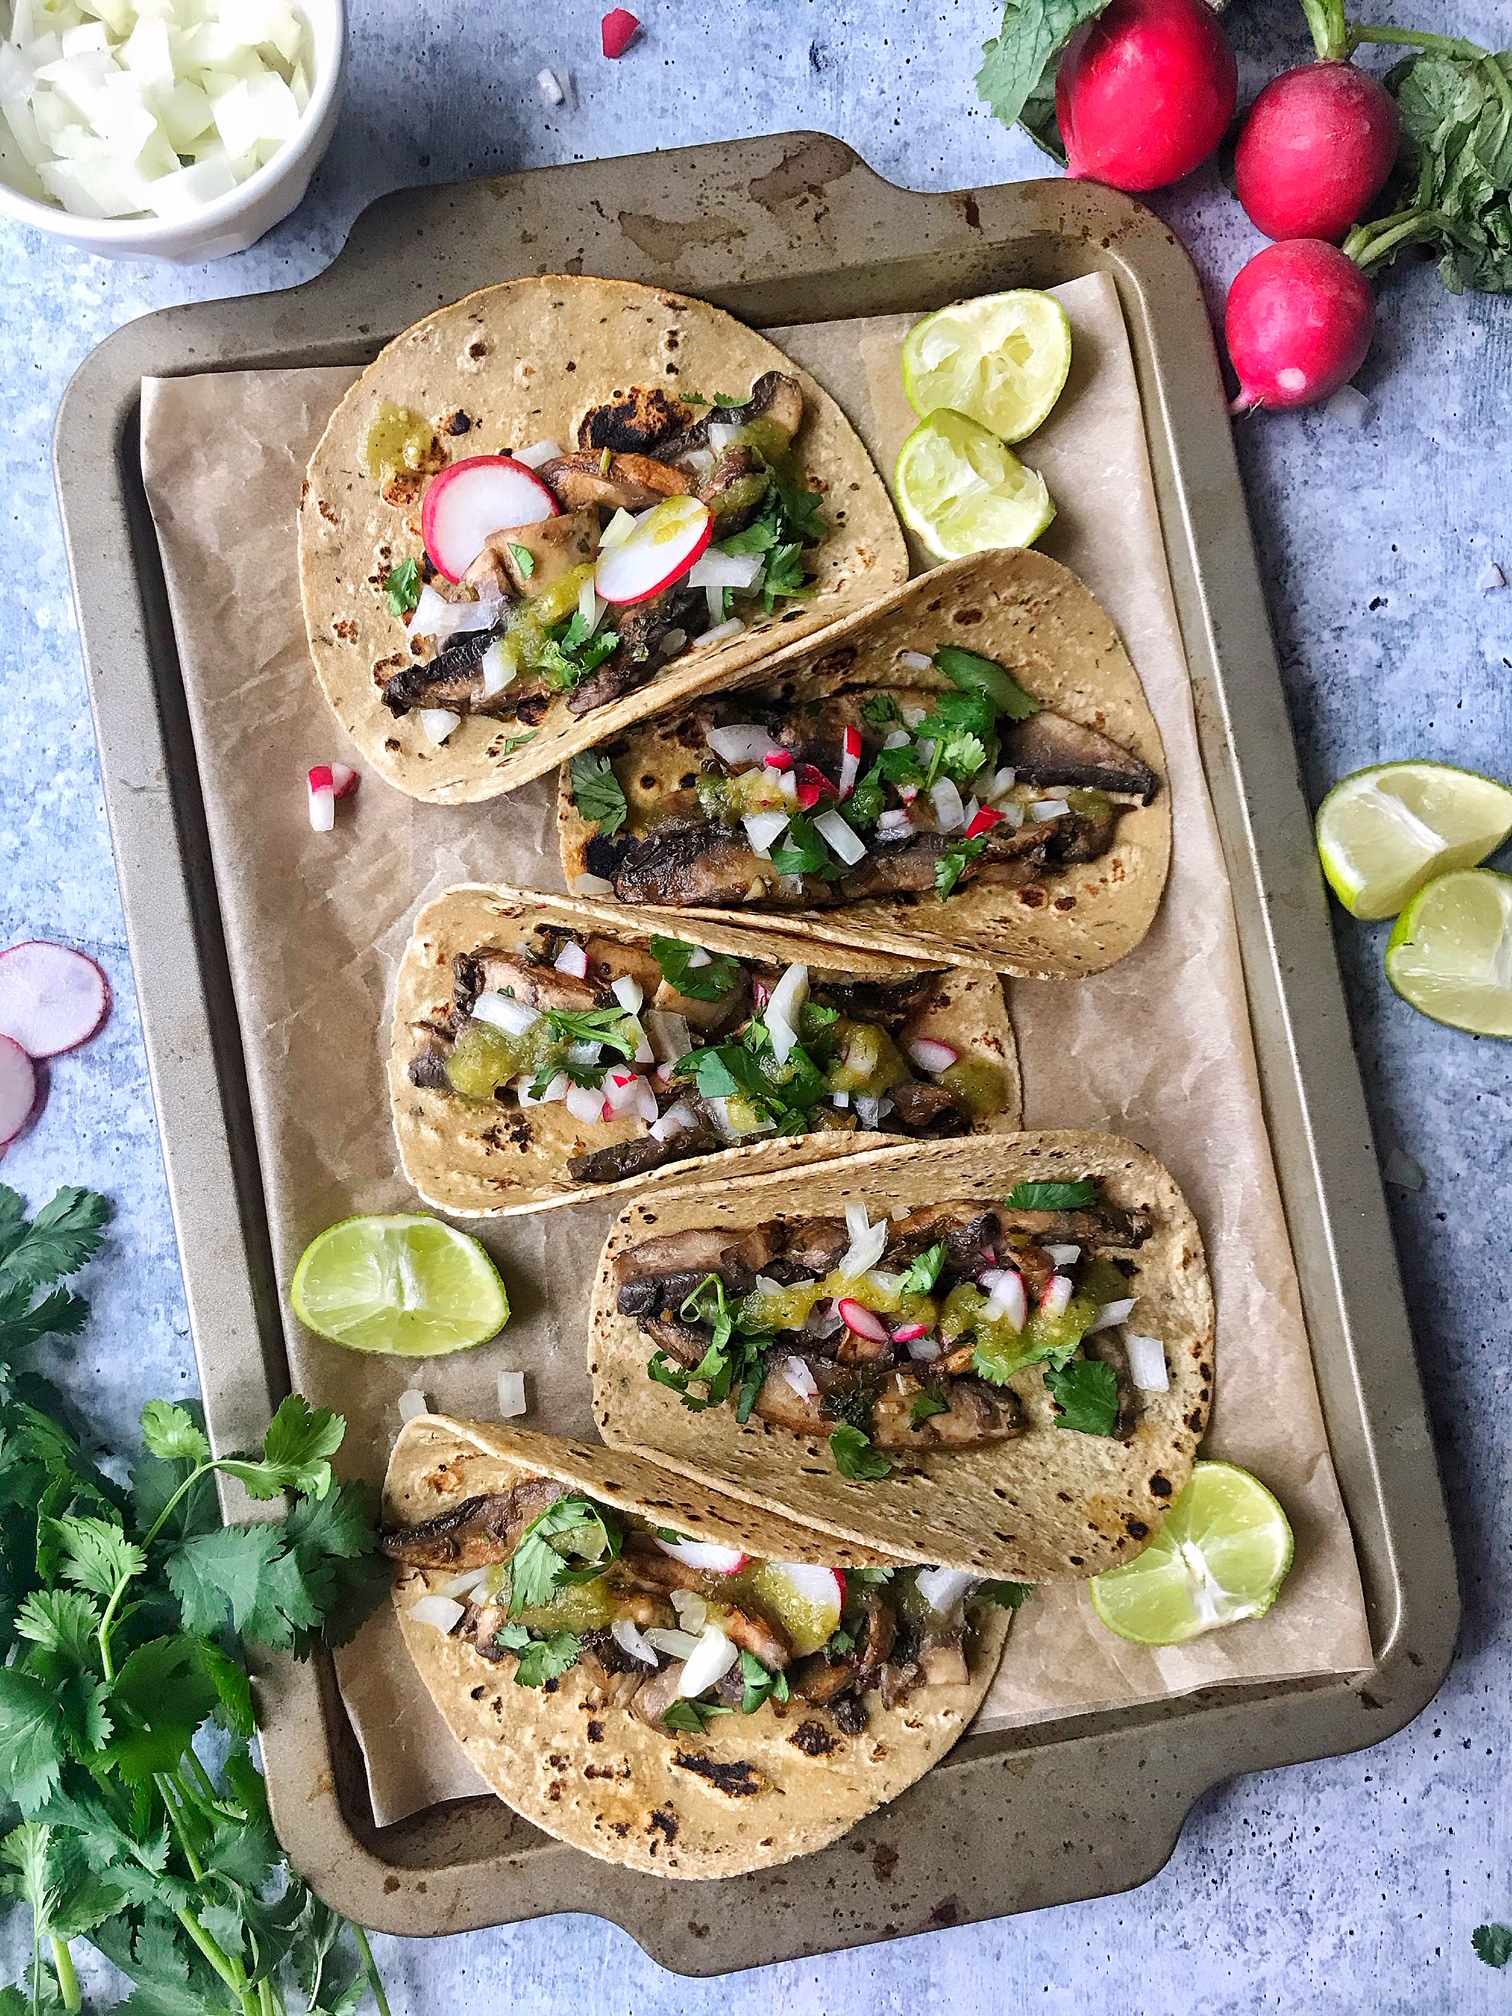 Mushroom Asada Tacos with onions, cilantro, salsa, and radishes. Tacos folded on a baking sheet.